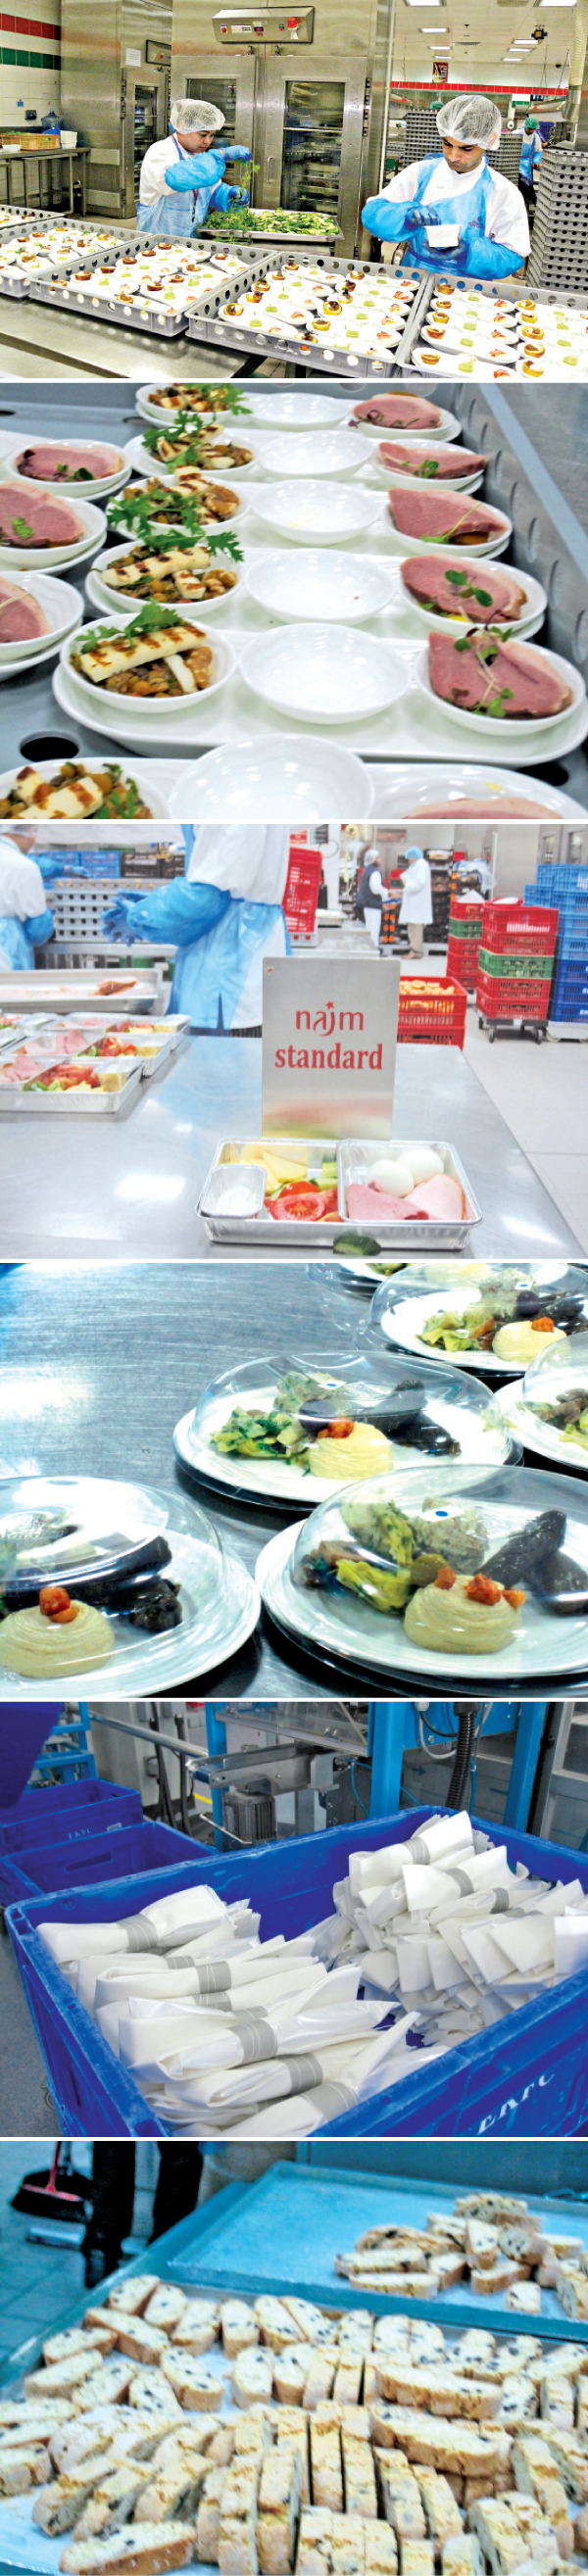 Emirates catering - how food and beverage adds value to the inflight ...